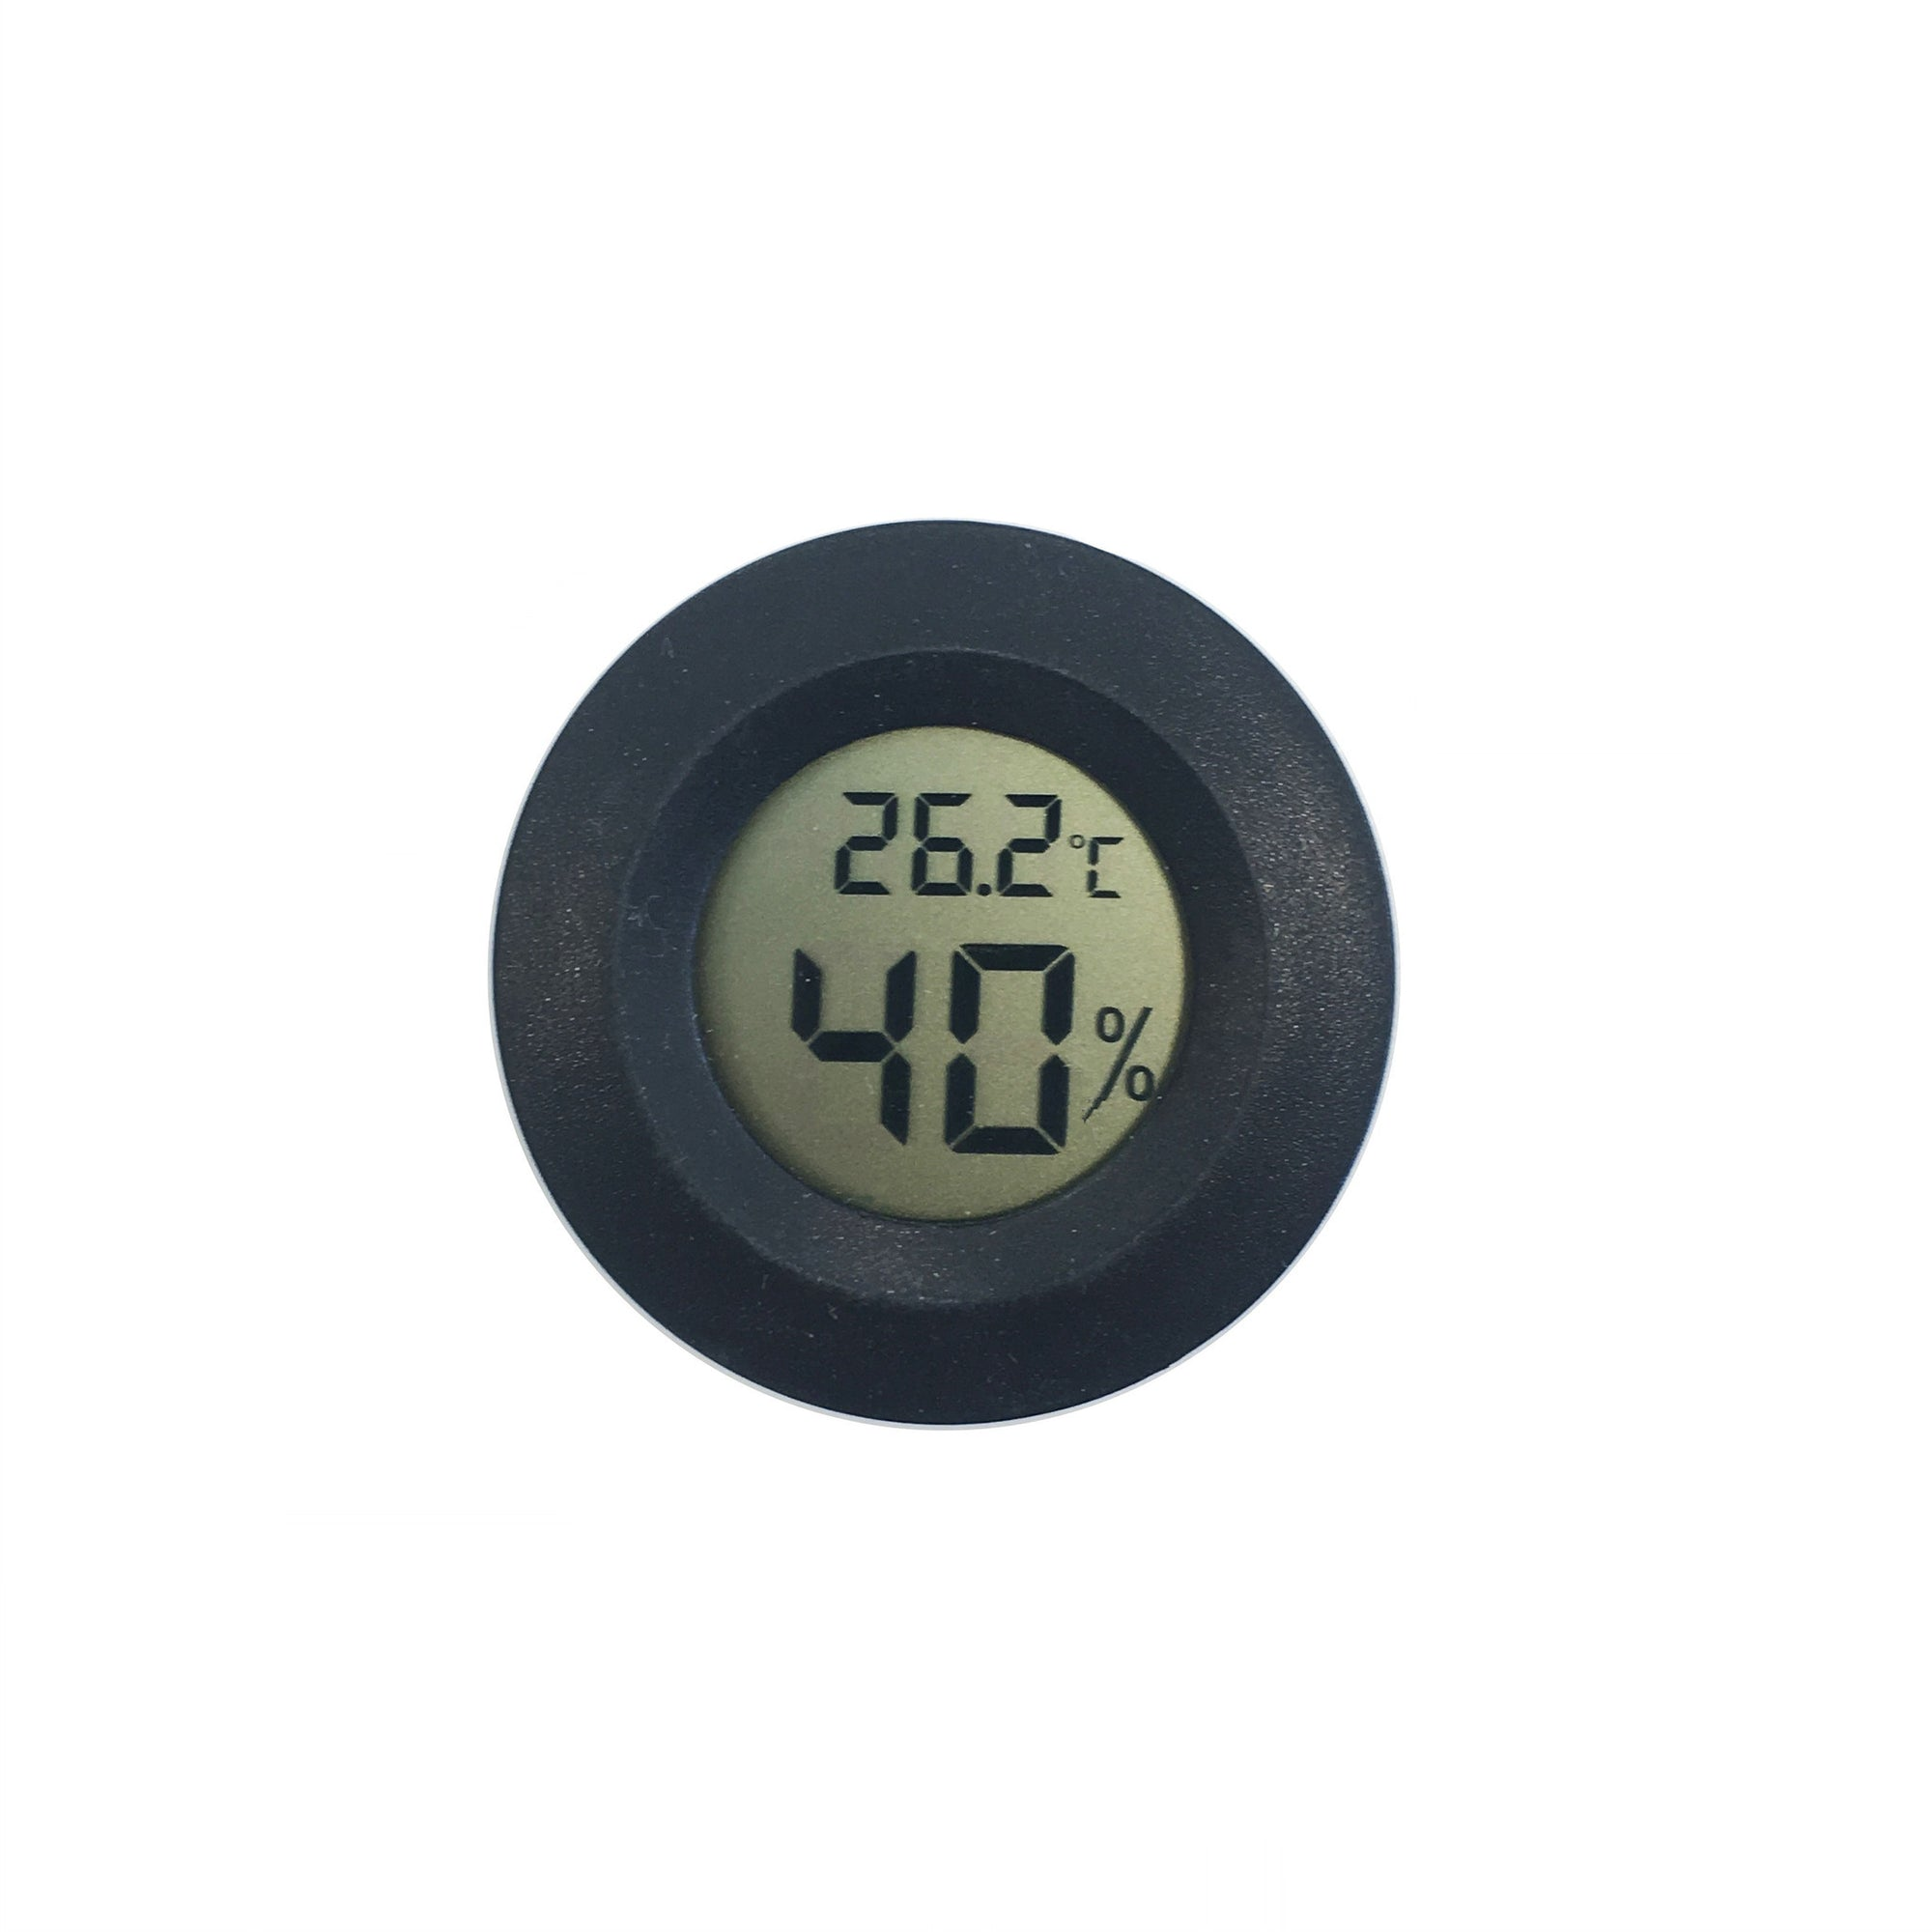 Hygrometer & Thermometer 2 in 1